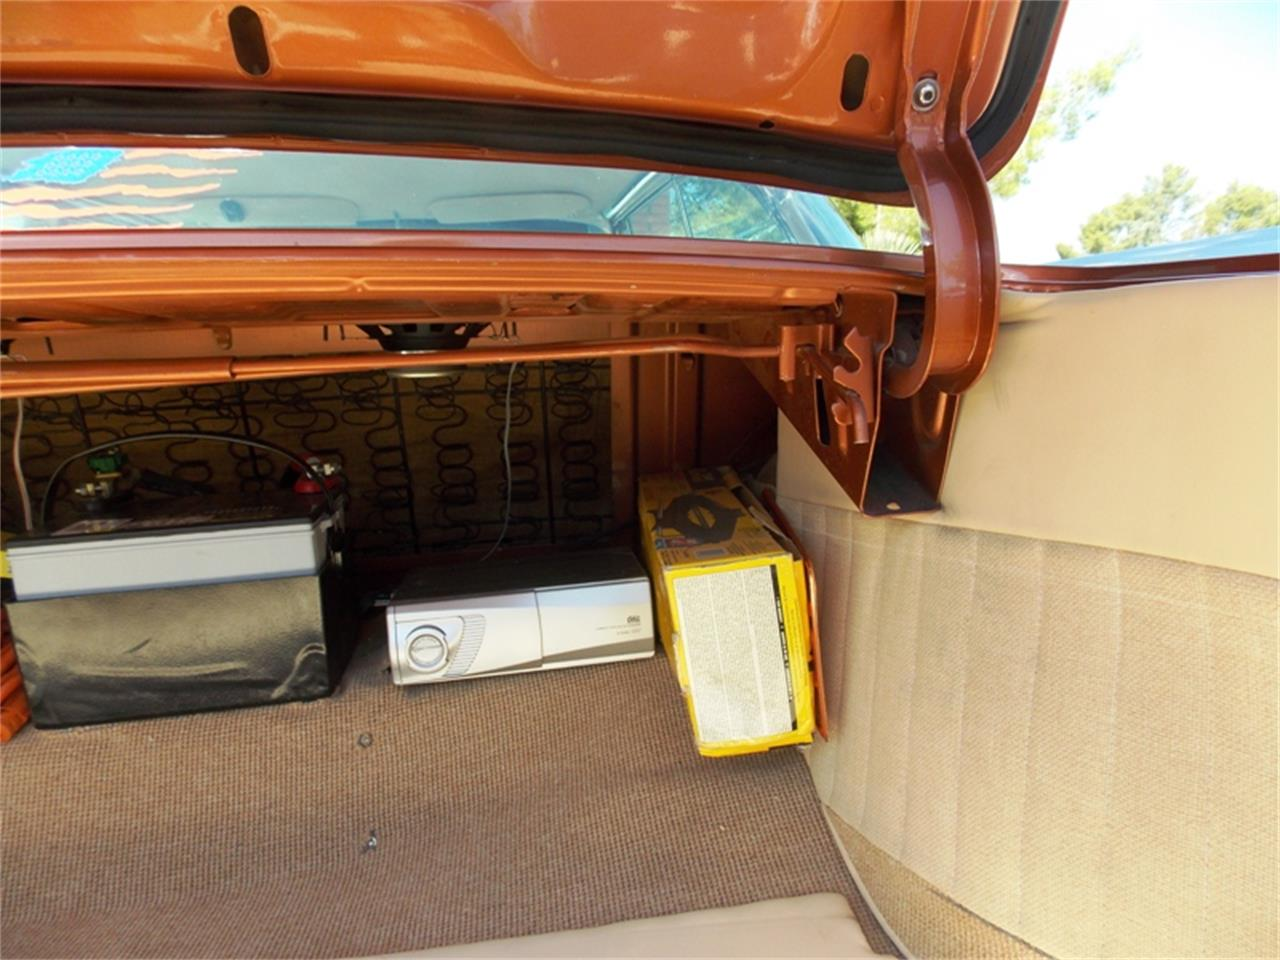 1957 Chevrolet Bel Air for sale in Tucson, AZ – photo 46